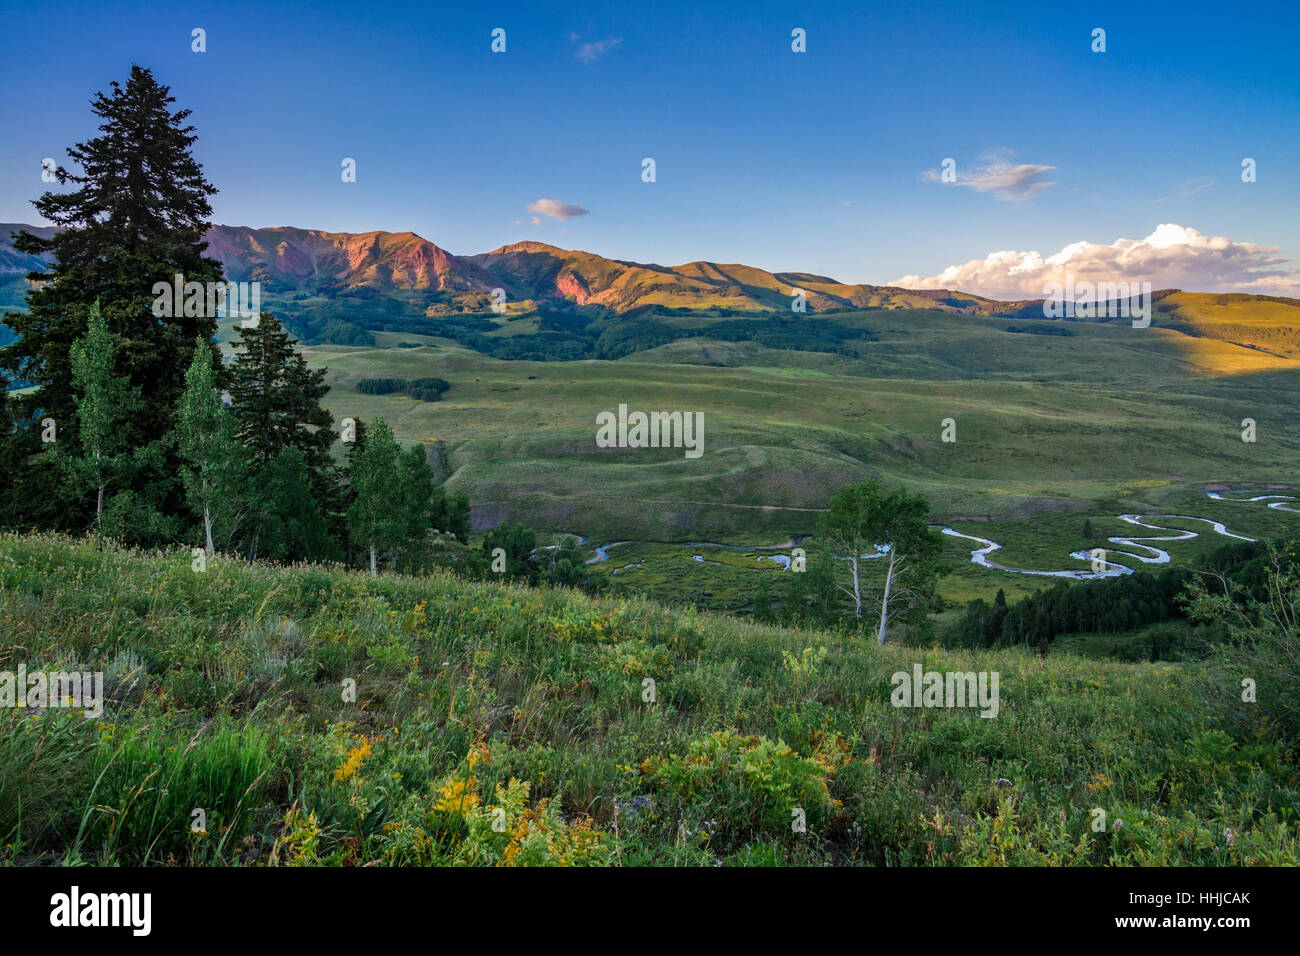 Setting sun makes mountains glow red over green summer fields and a meandering stream near Crested Butte, Colorado - Stock Image